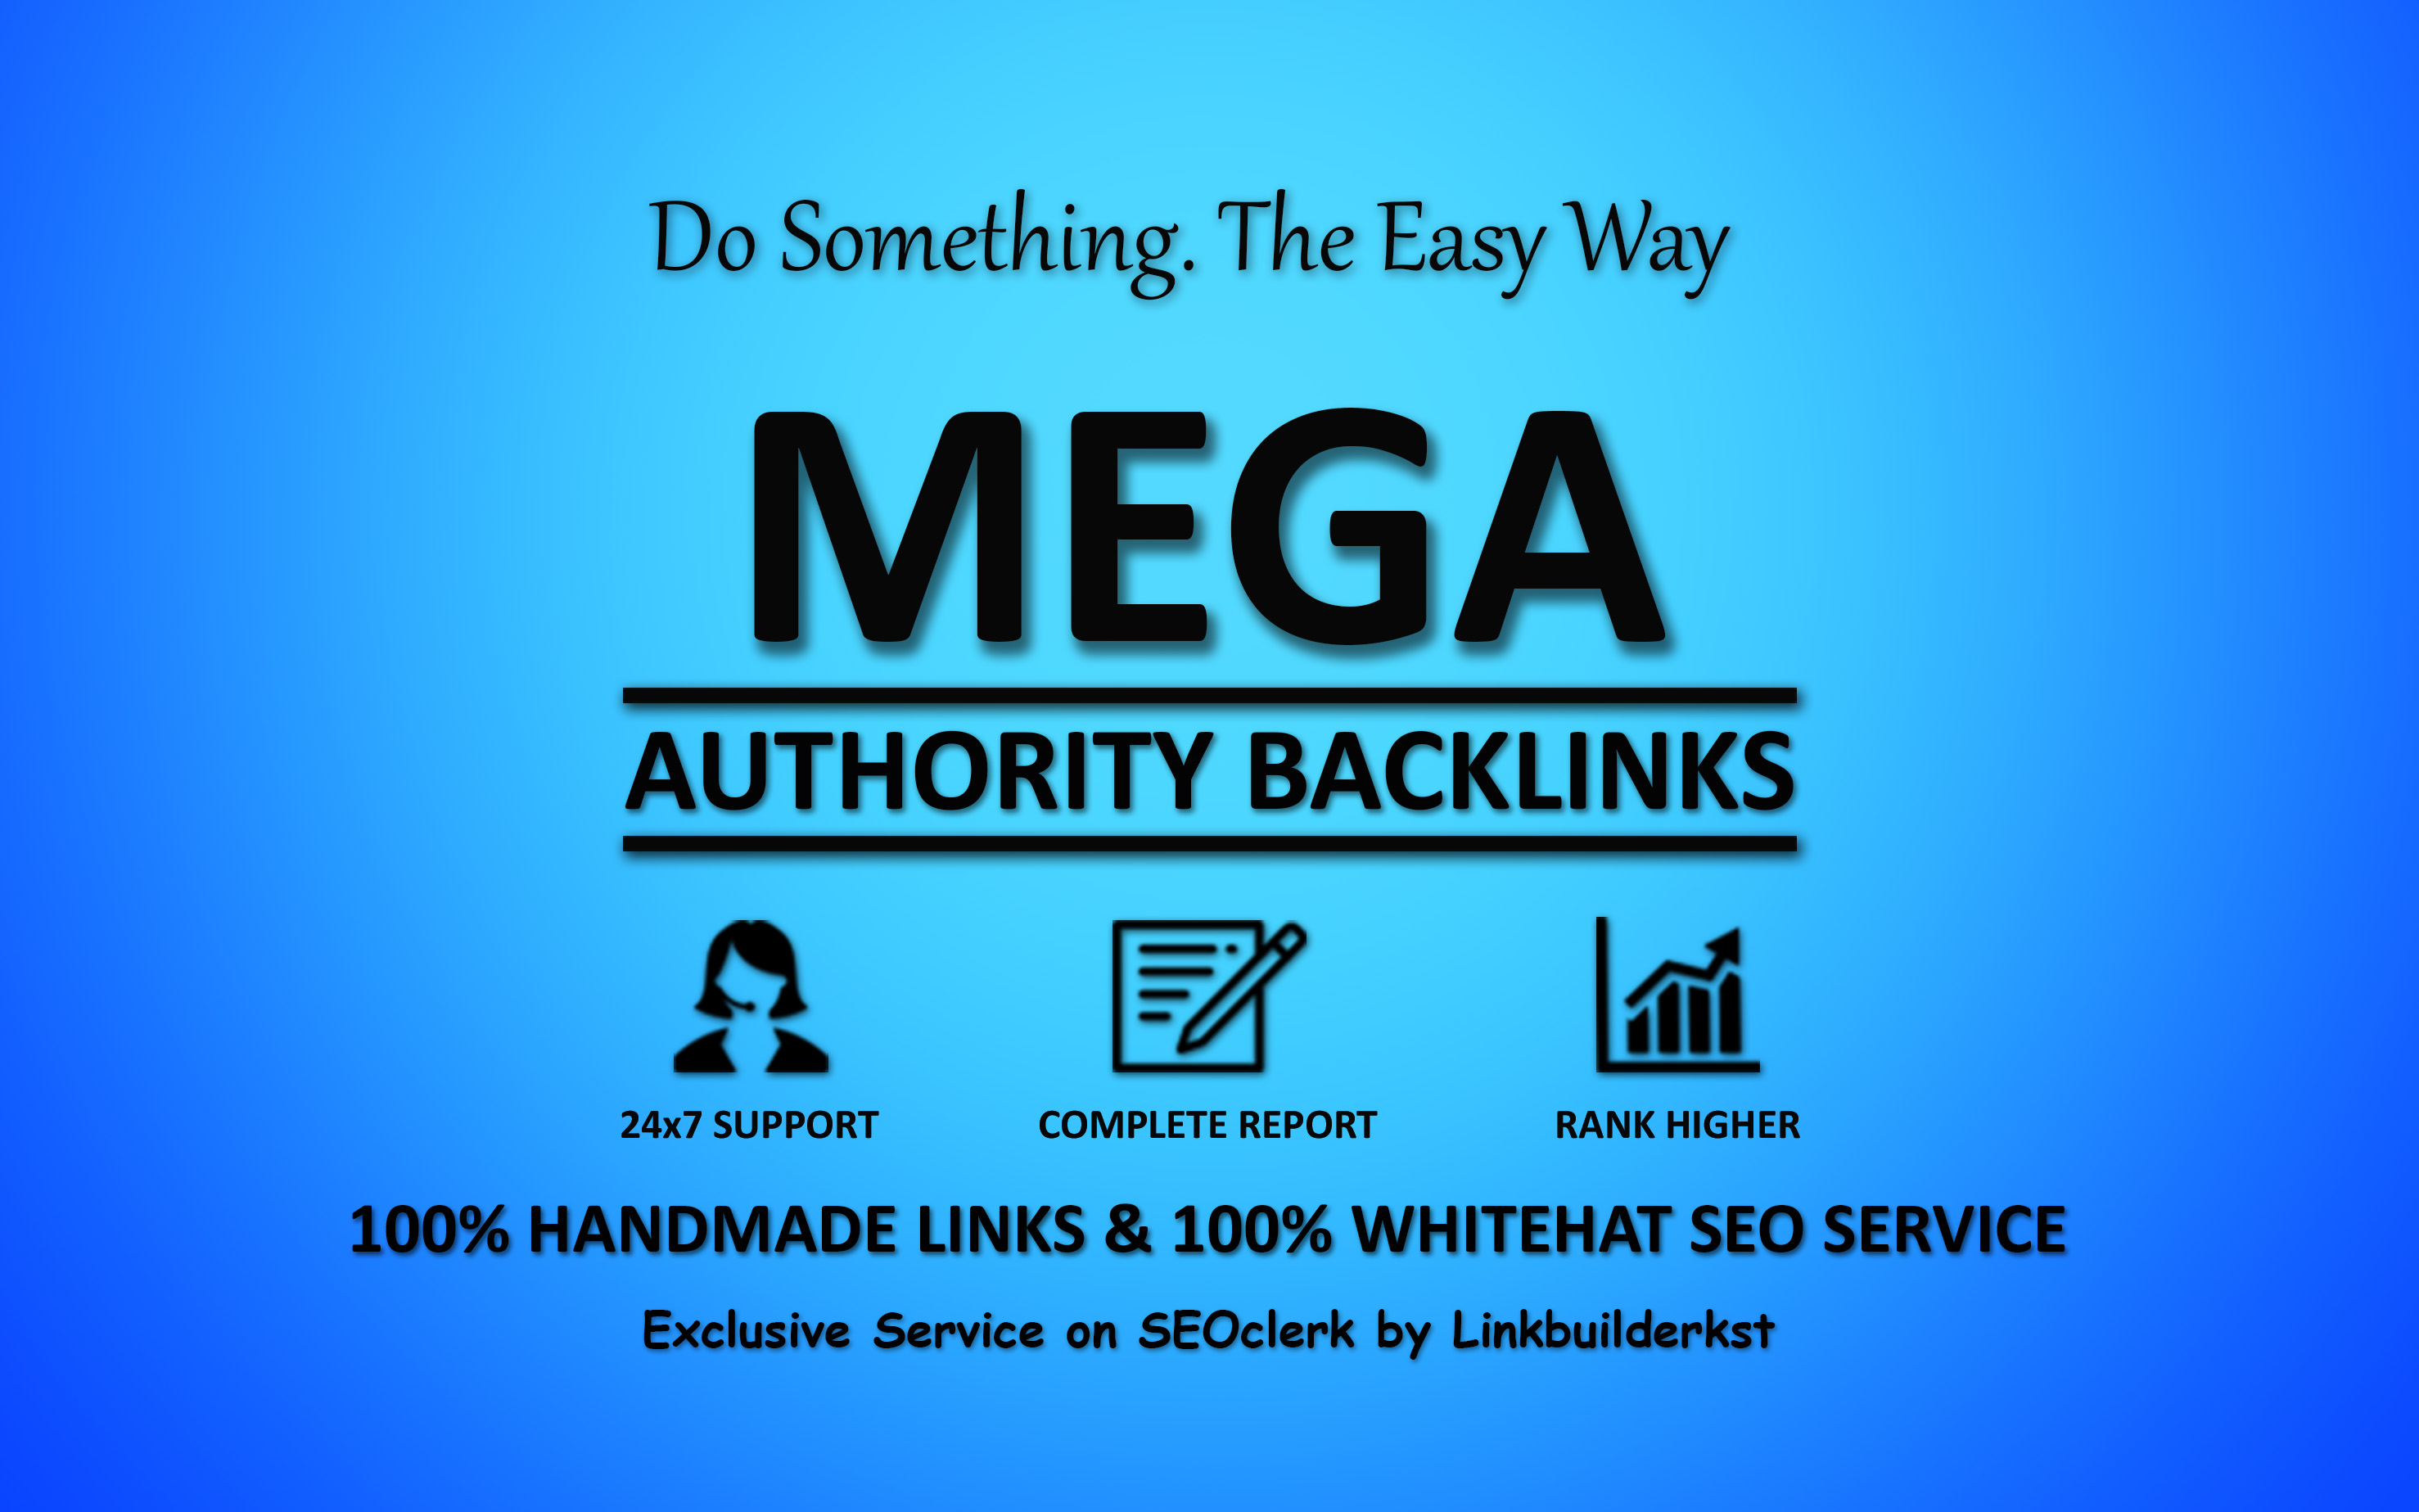 Mega Authority Backlinks - WhiteHat SEO Service To Skyrocket Your Google Rankings